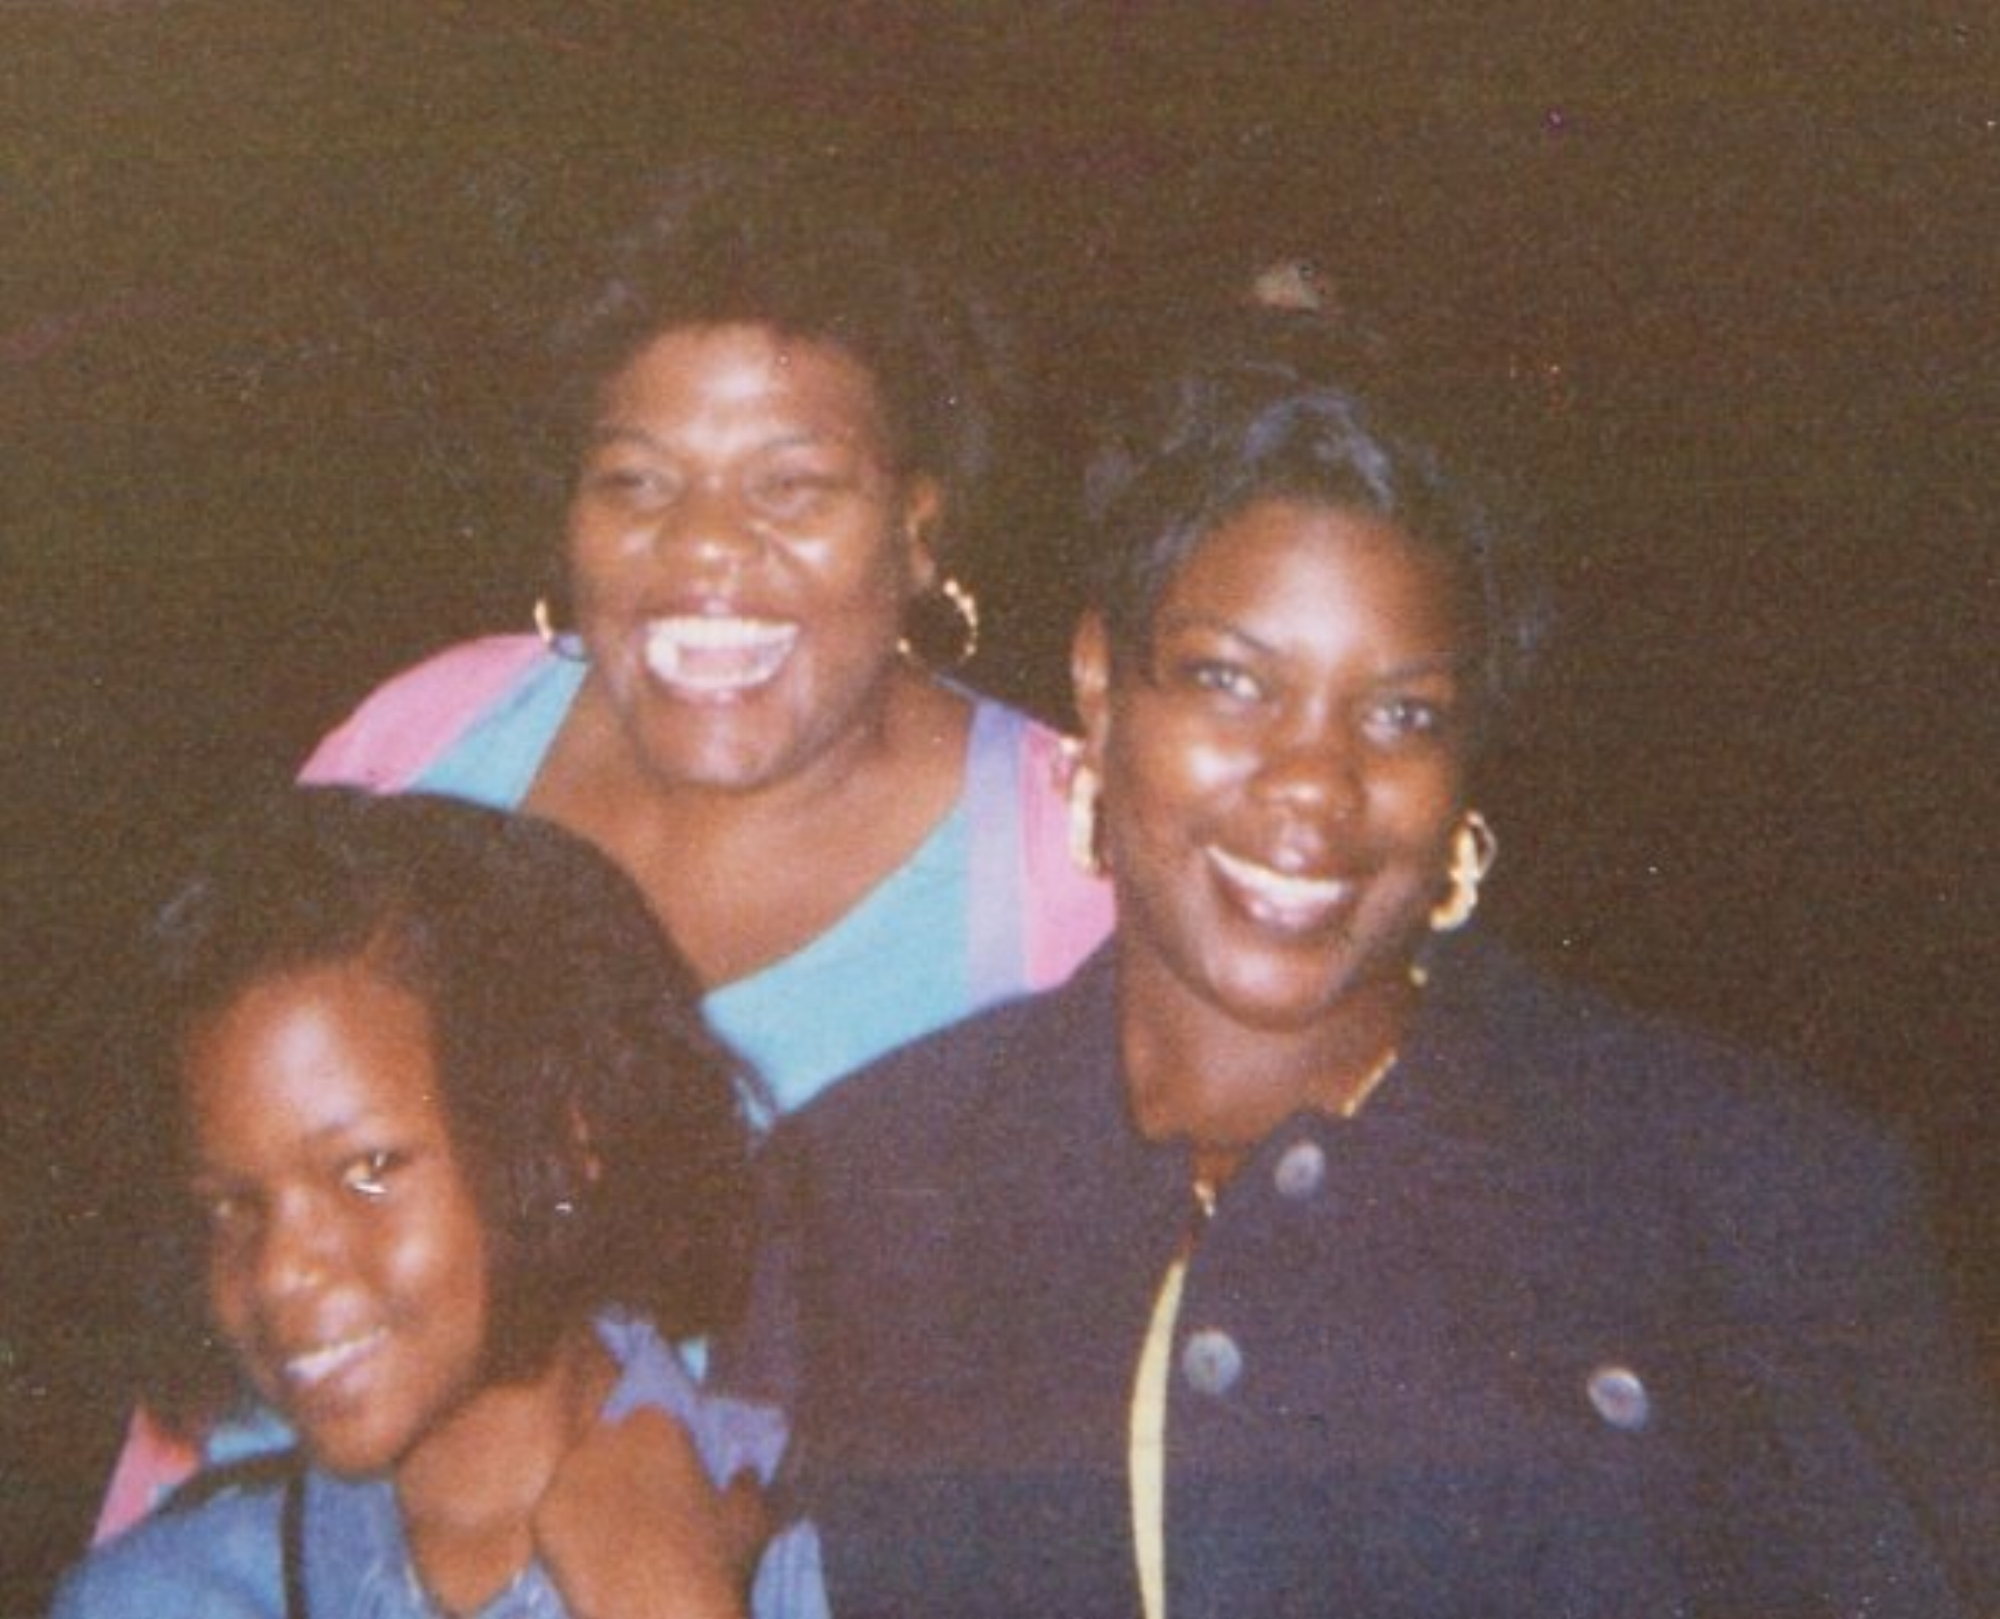 Tamiko Stanley (pictured, right) with her mother Pamela Renee Seals-Stanley, and her sister. Courtesy of Tamiko Stanley.